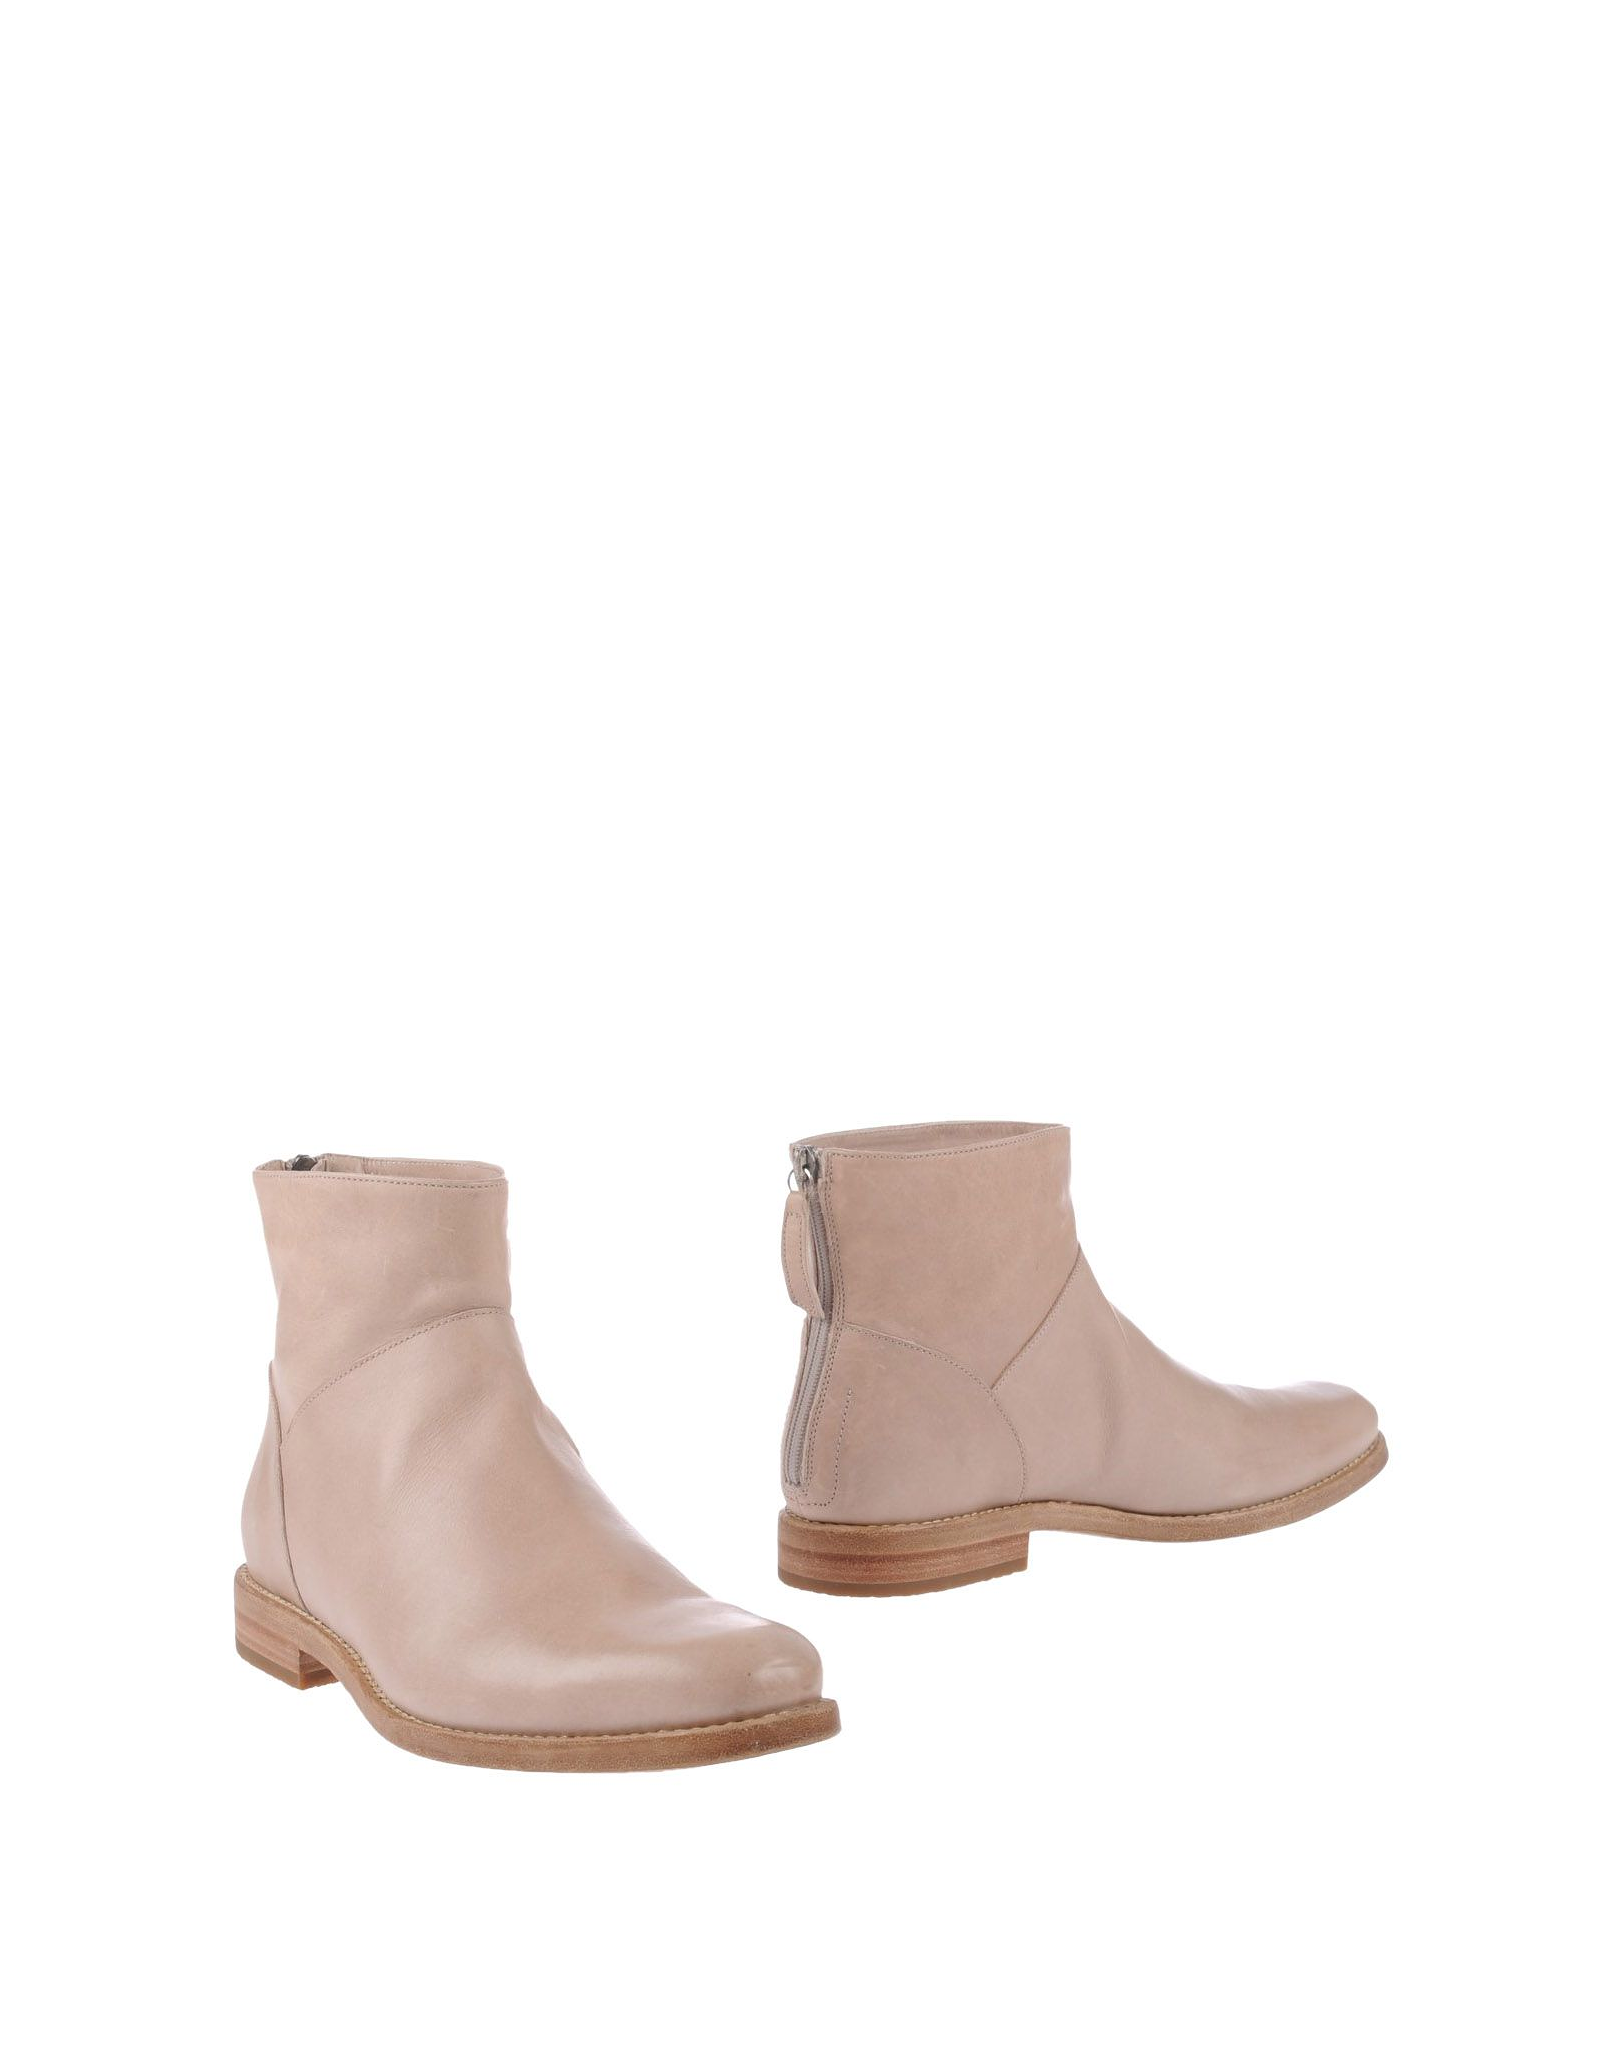 Brunello Cucinelli Ankle boots - was $550.0, now $430.0 (22% Off) @ Yoox.com